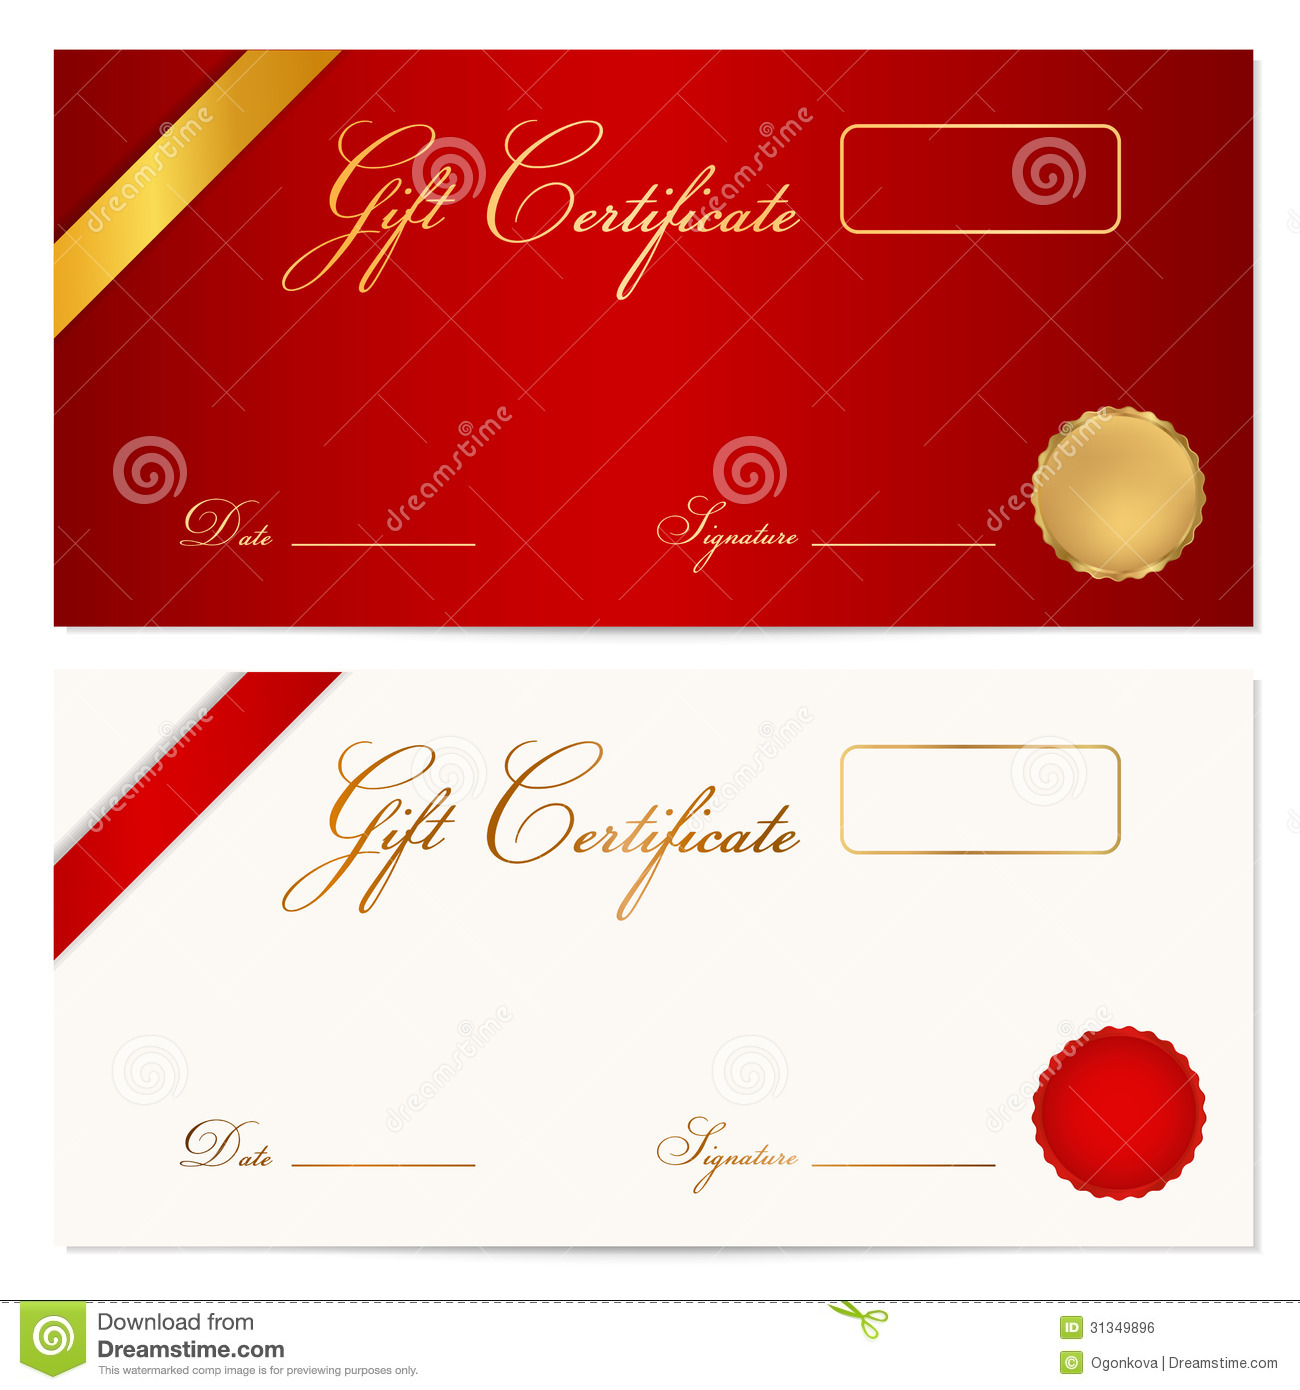 Gift certificate voucher template wax seal stock vector image royalty free stock photo download gift certificate voucher template yelopaper